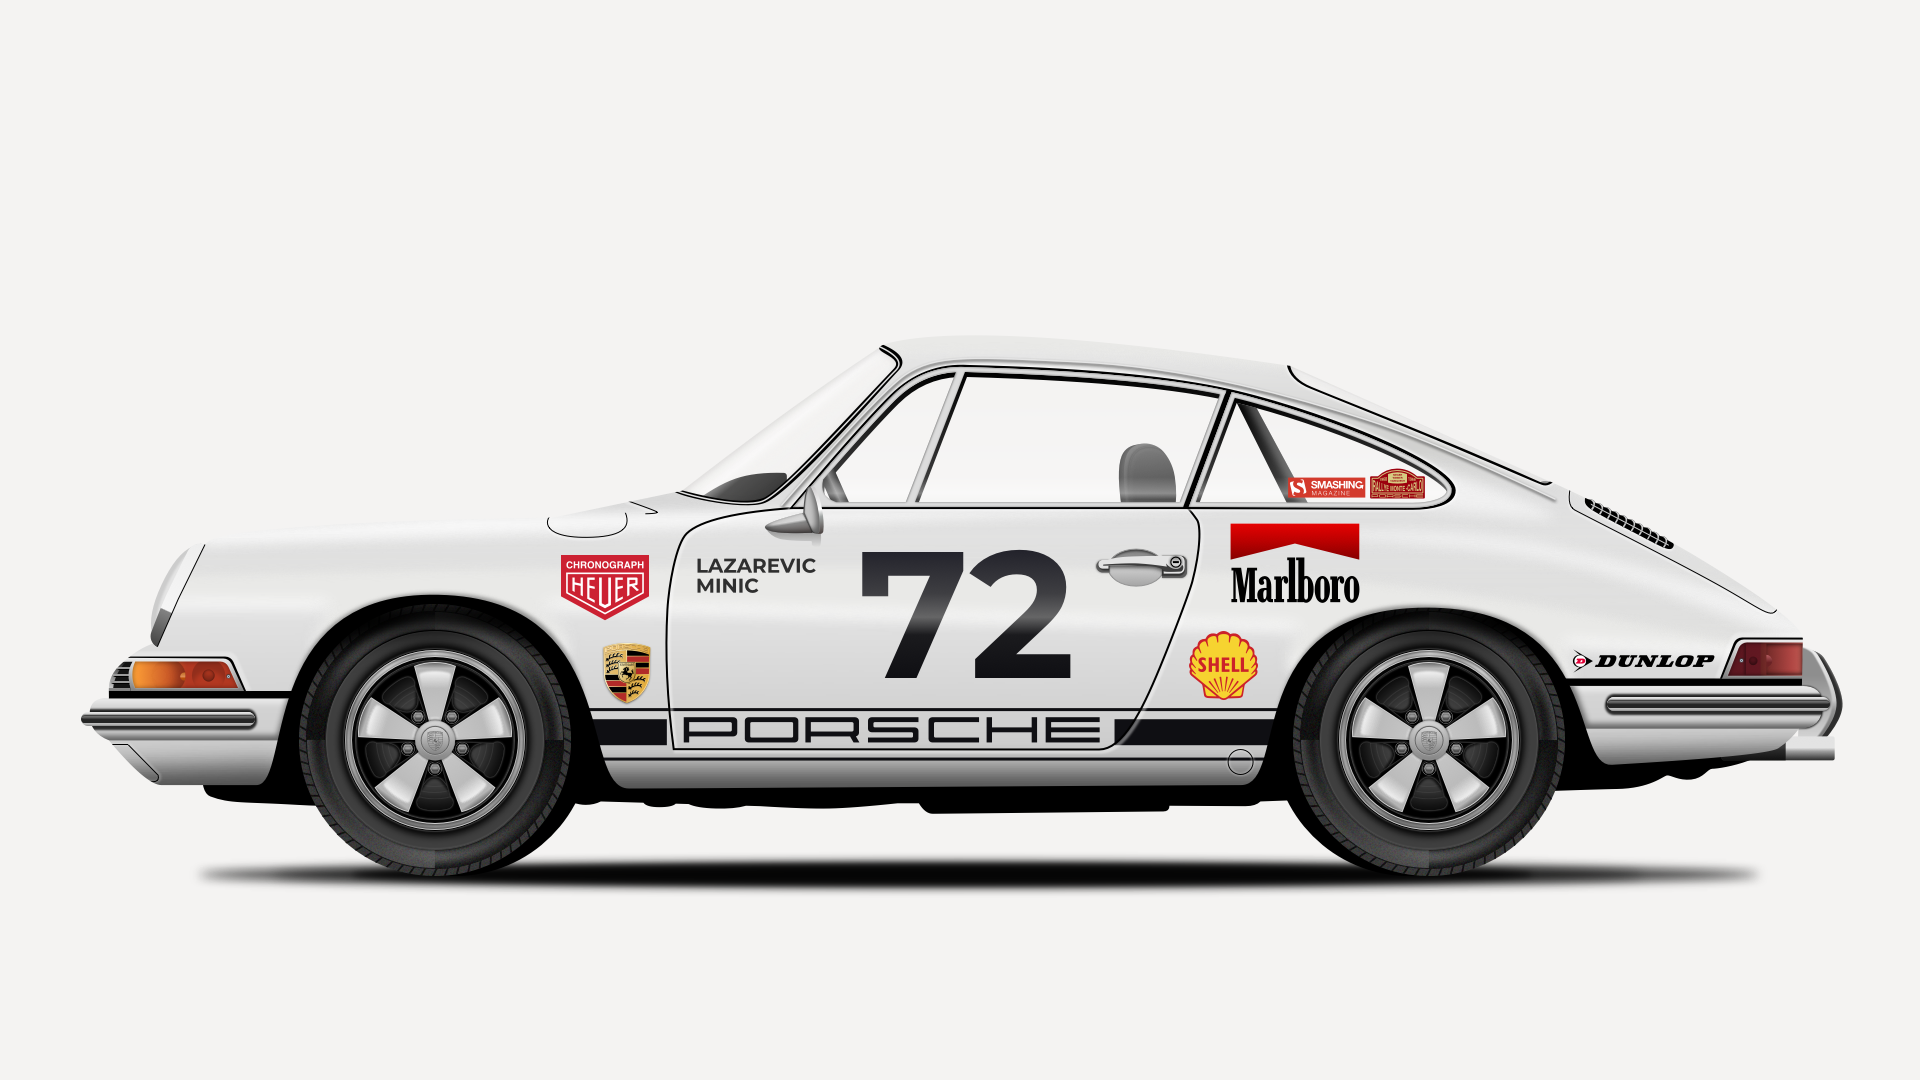 How To Create A Porsche 911 With Sketch (Part 1)